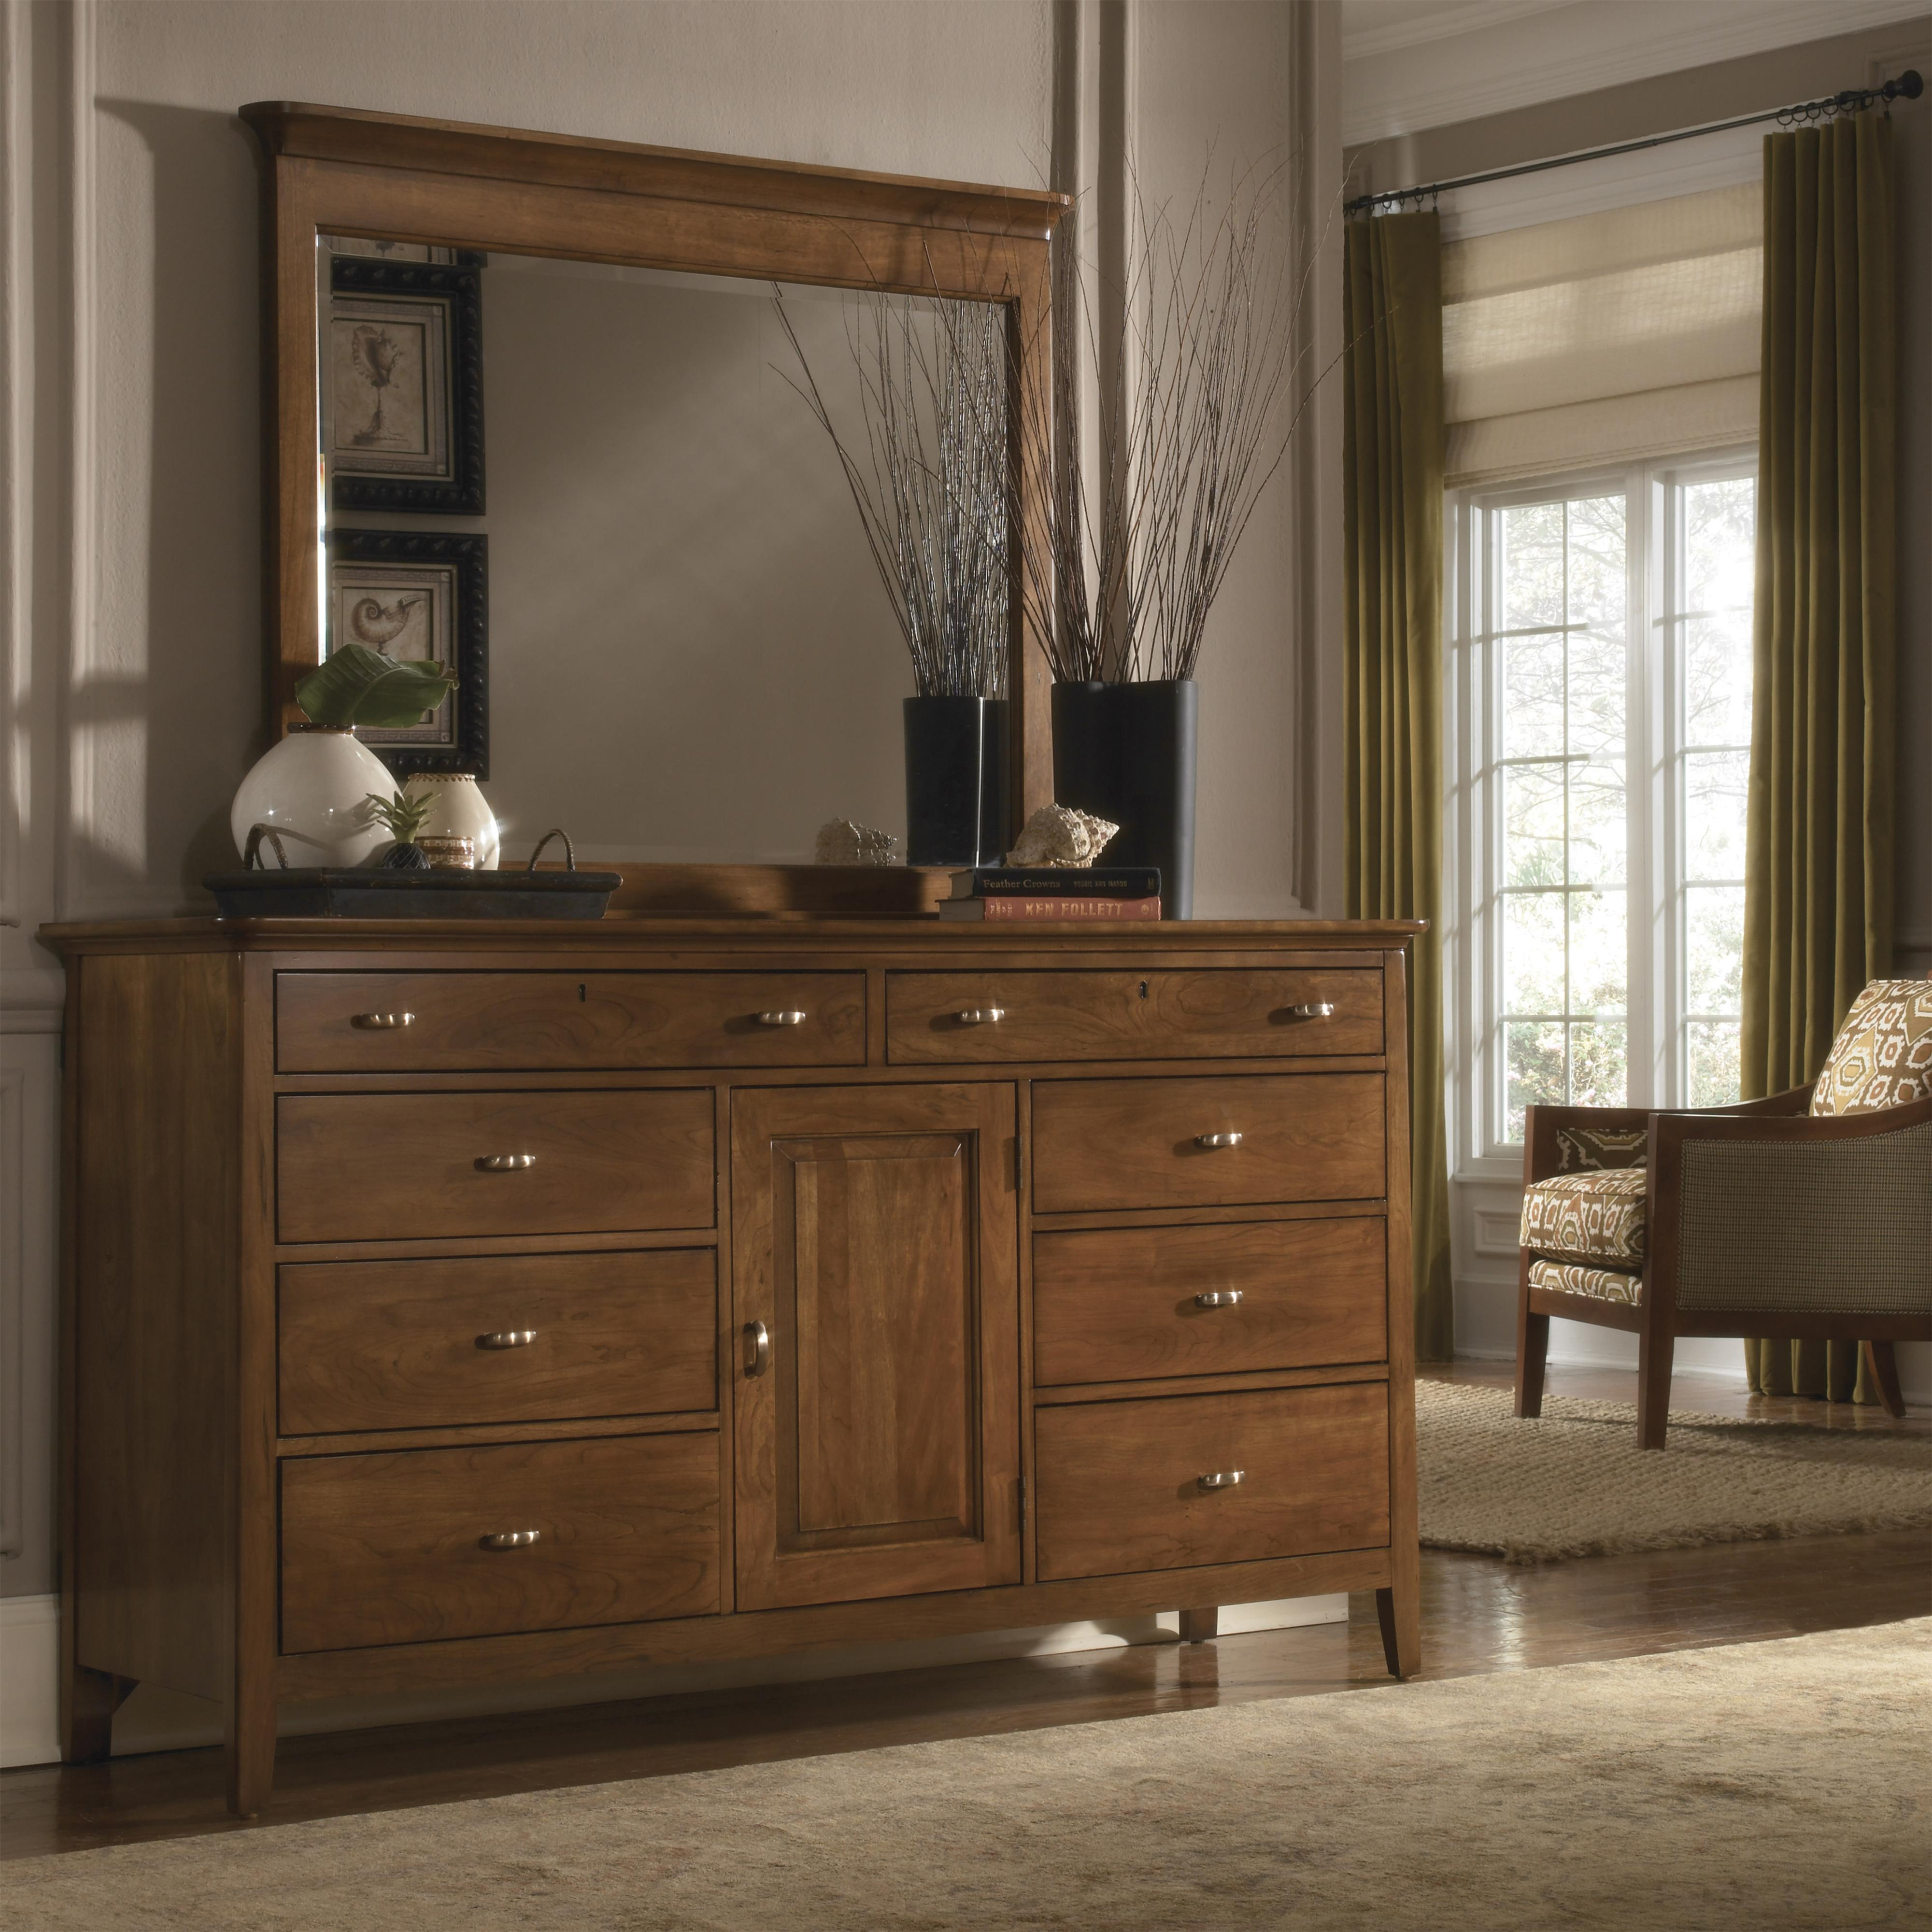 Kincaid Furniture Cherry Park Eight Drawer Dresser Landscape Mirror With Crown Molding Combo